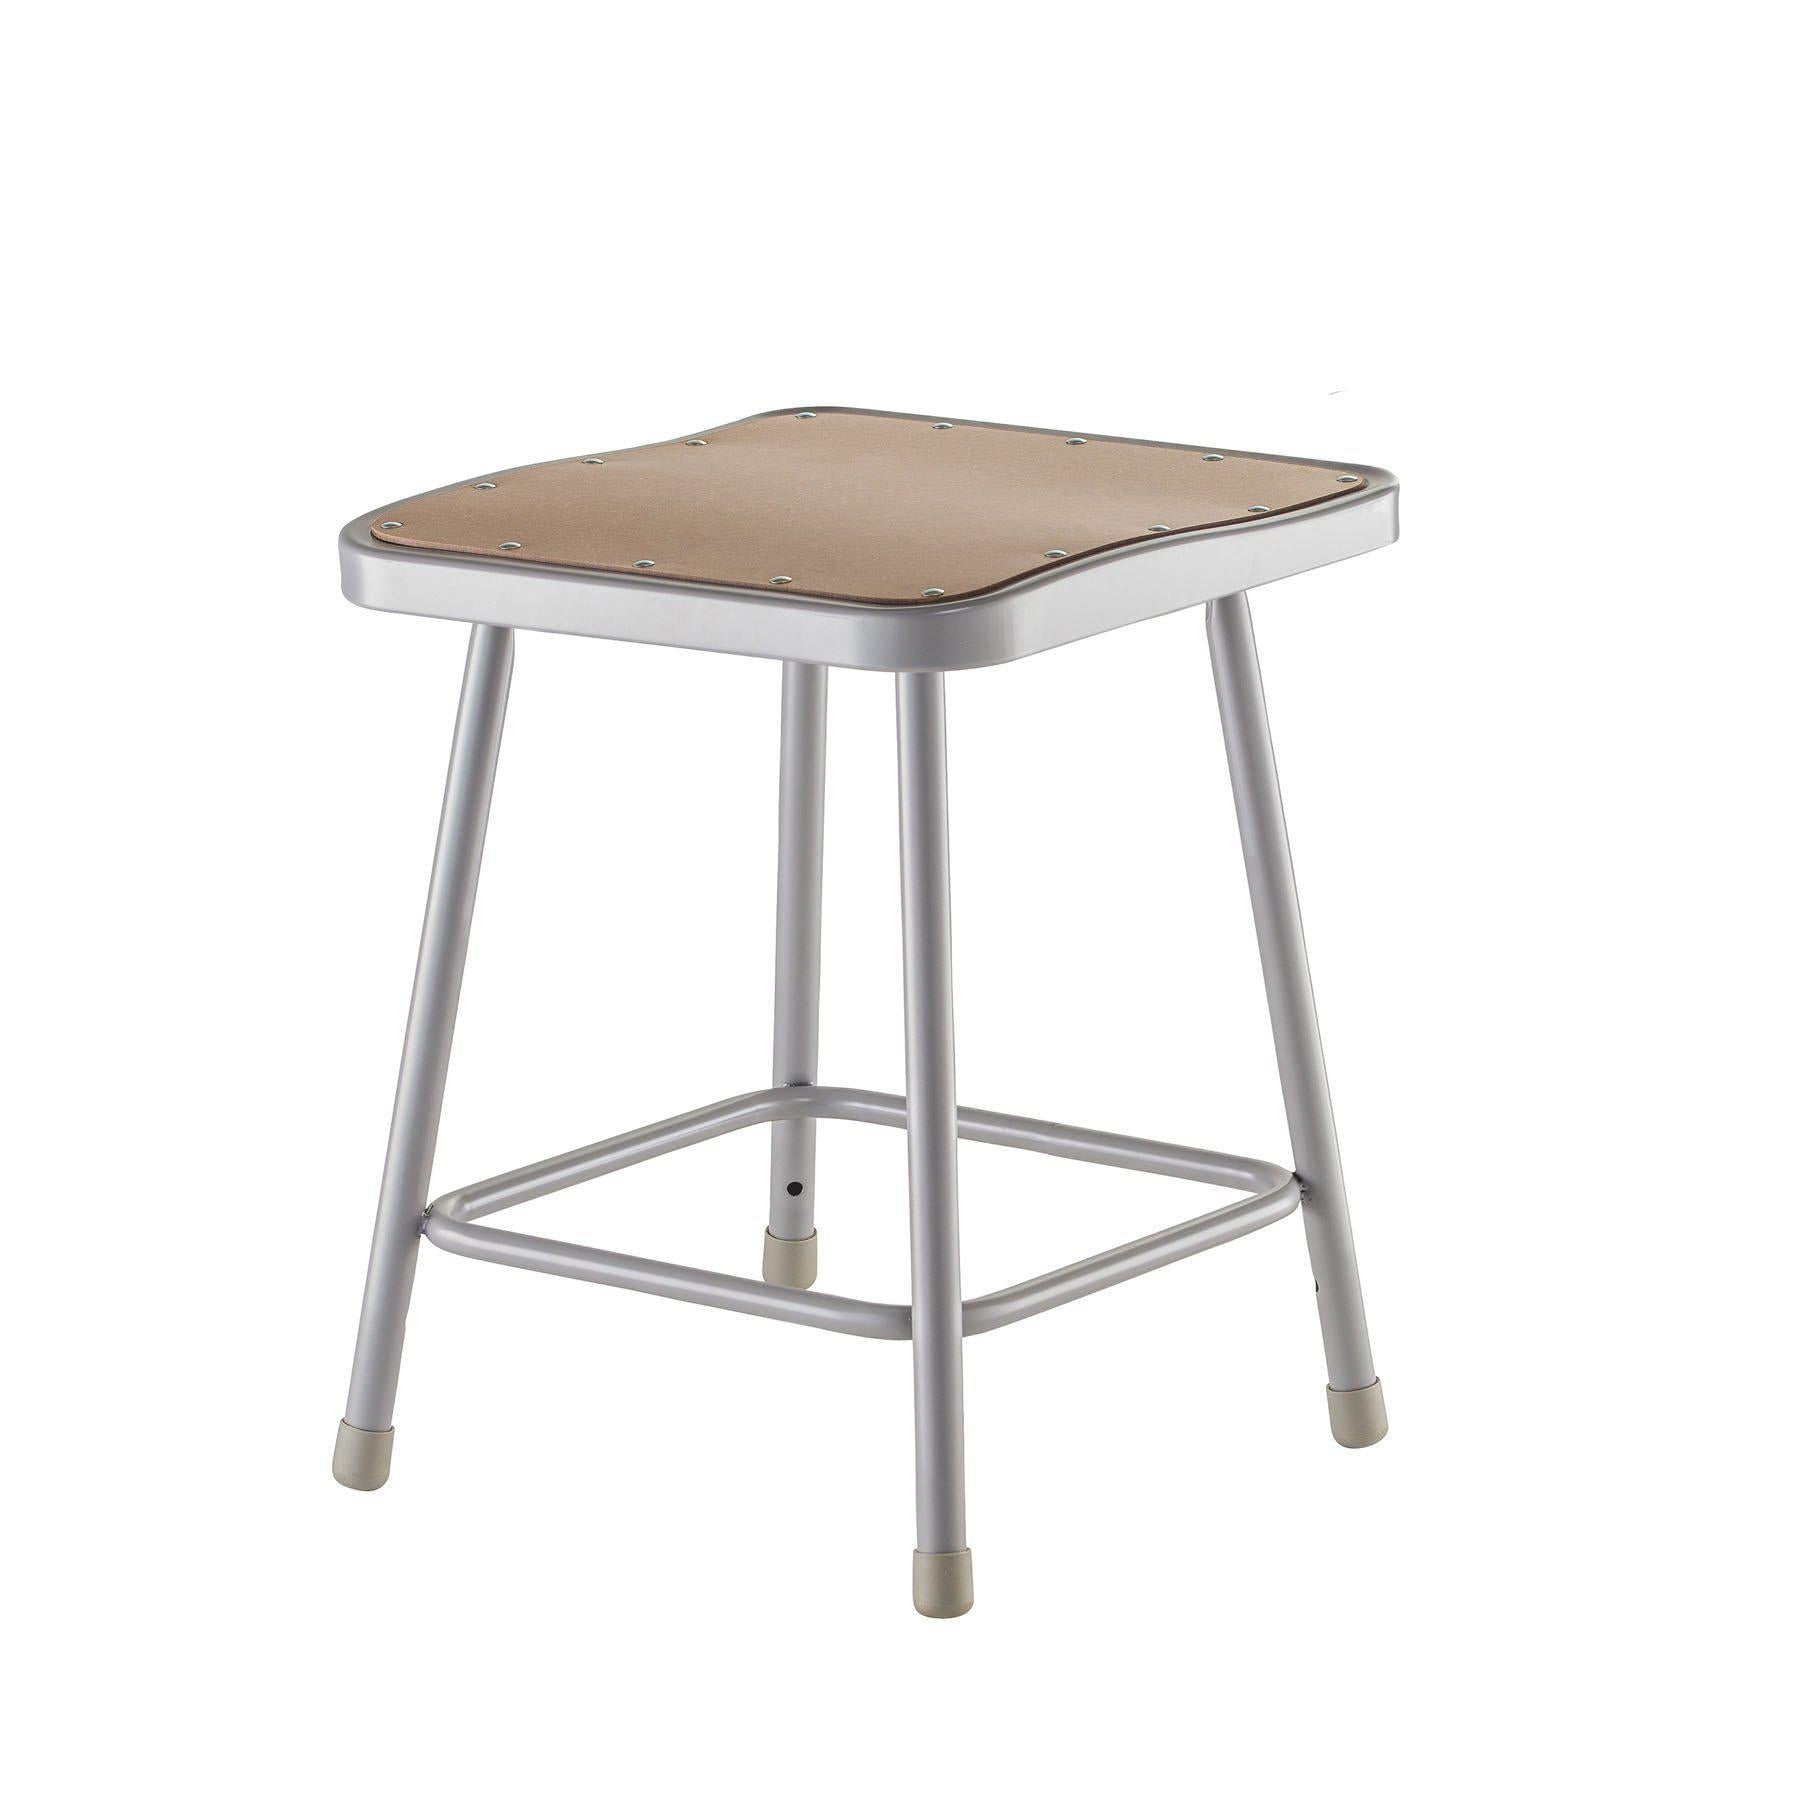 Heavy Duty Square Seat Steel Stool, Grey